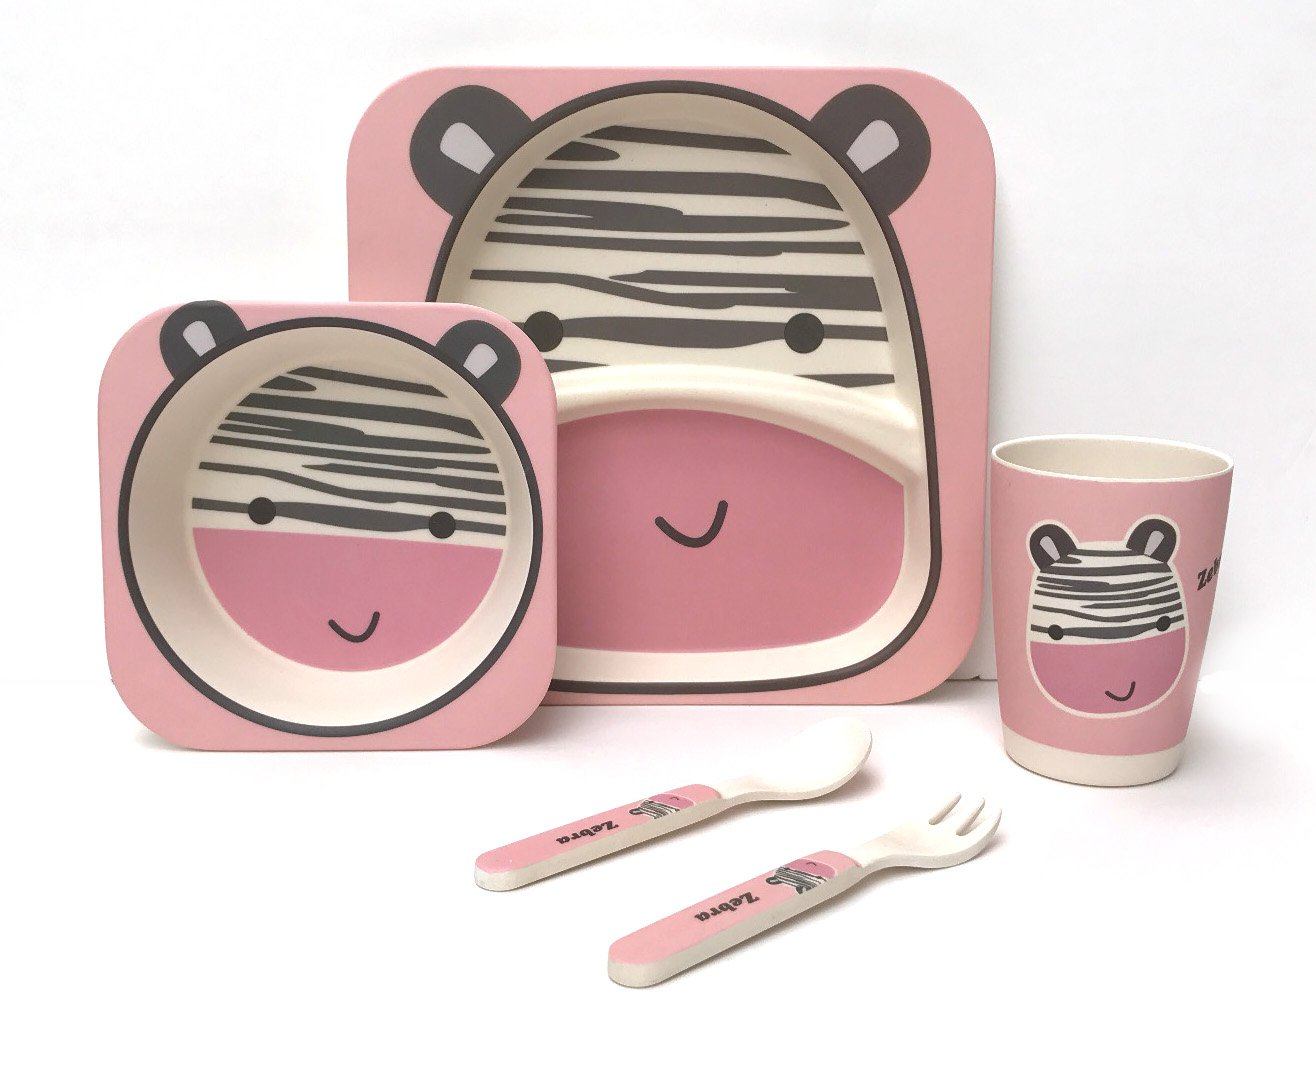 Children's 5 Piece Bamboo Dinner Set - 100% Bamboo Fibre, Eco-Friendly, Dishwasher Safe (Giraffe) Ana Wiz Ltd